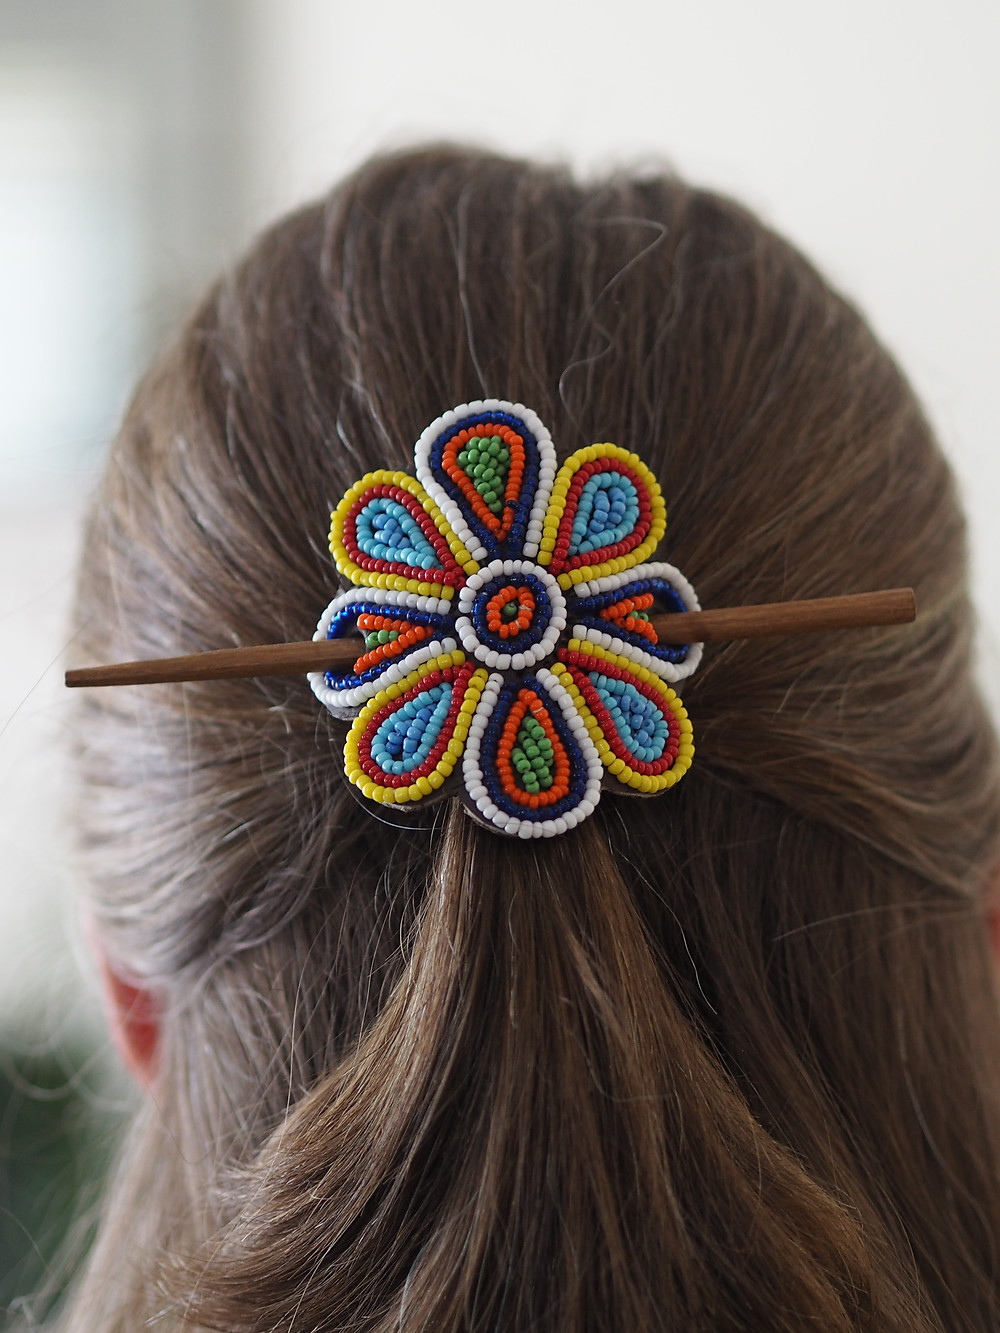 Masai handmade flower hairstick barrette in hair. Available to buy at Wild Home Online on Etsy.